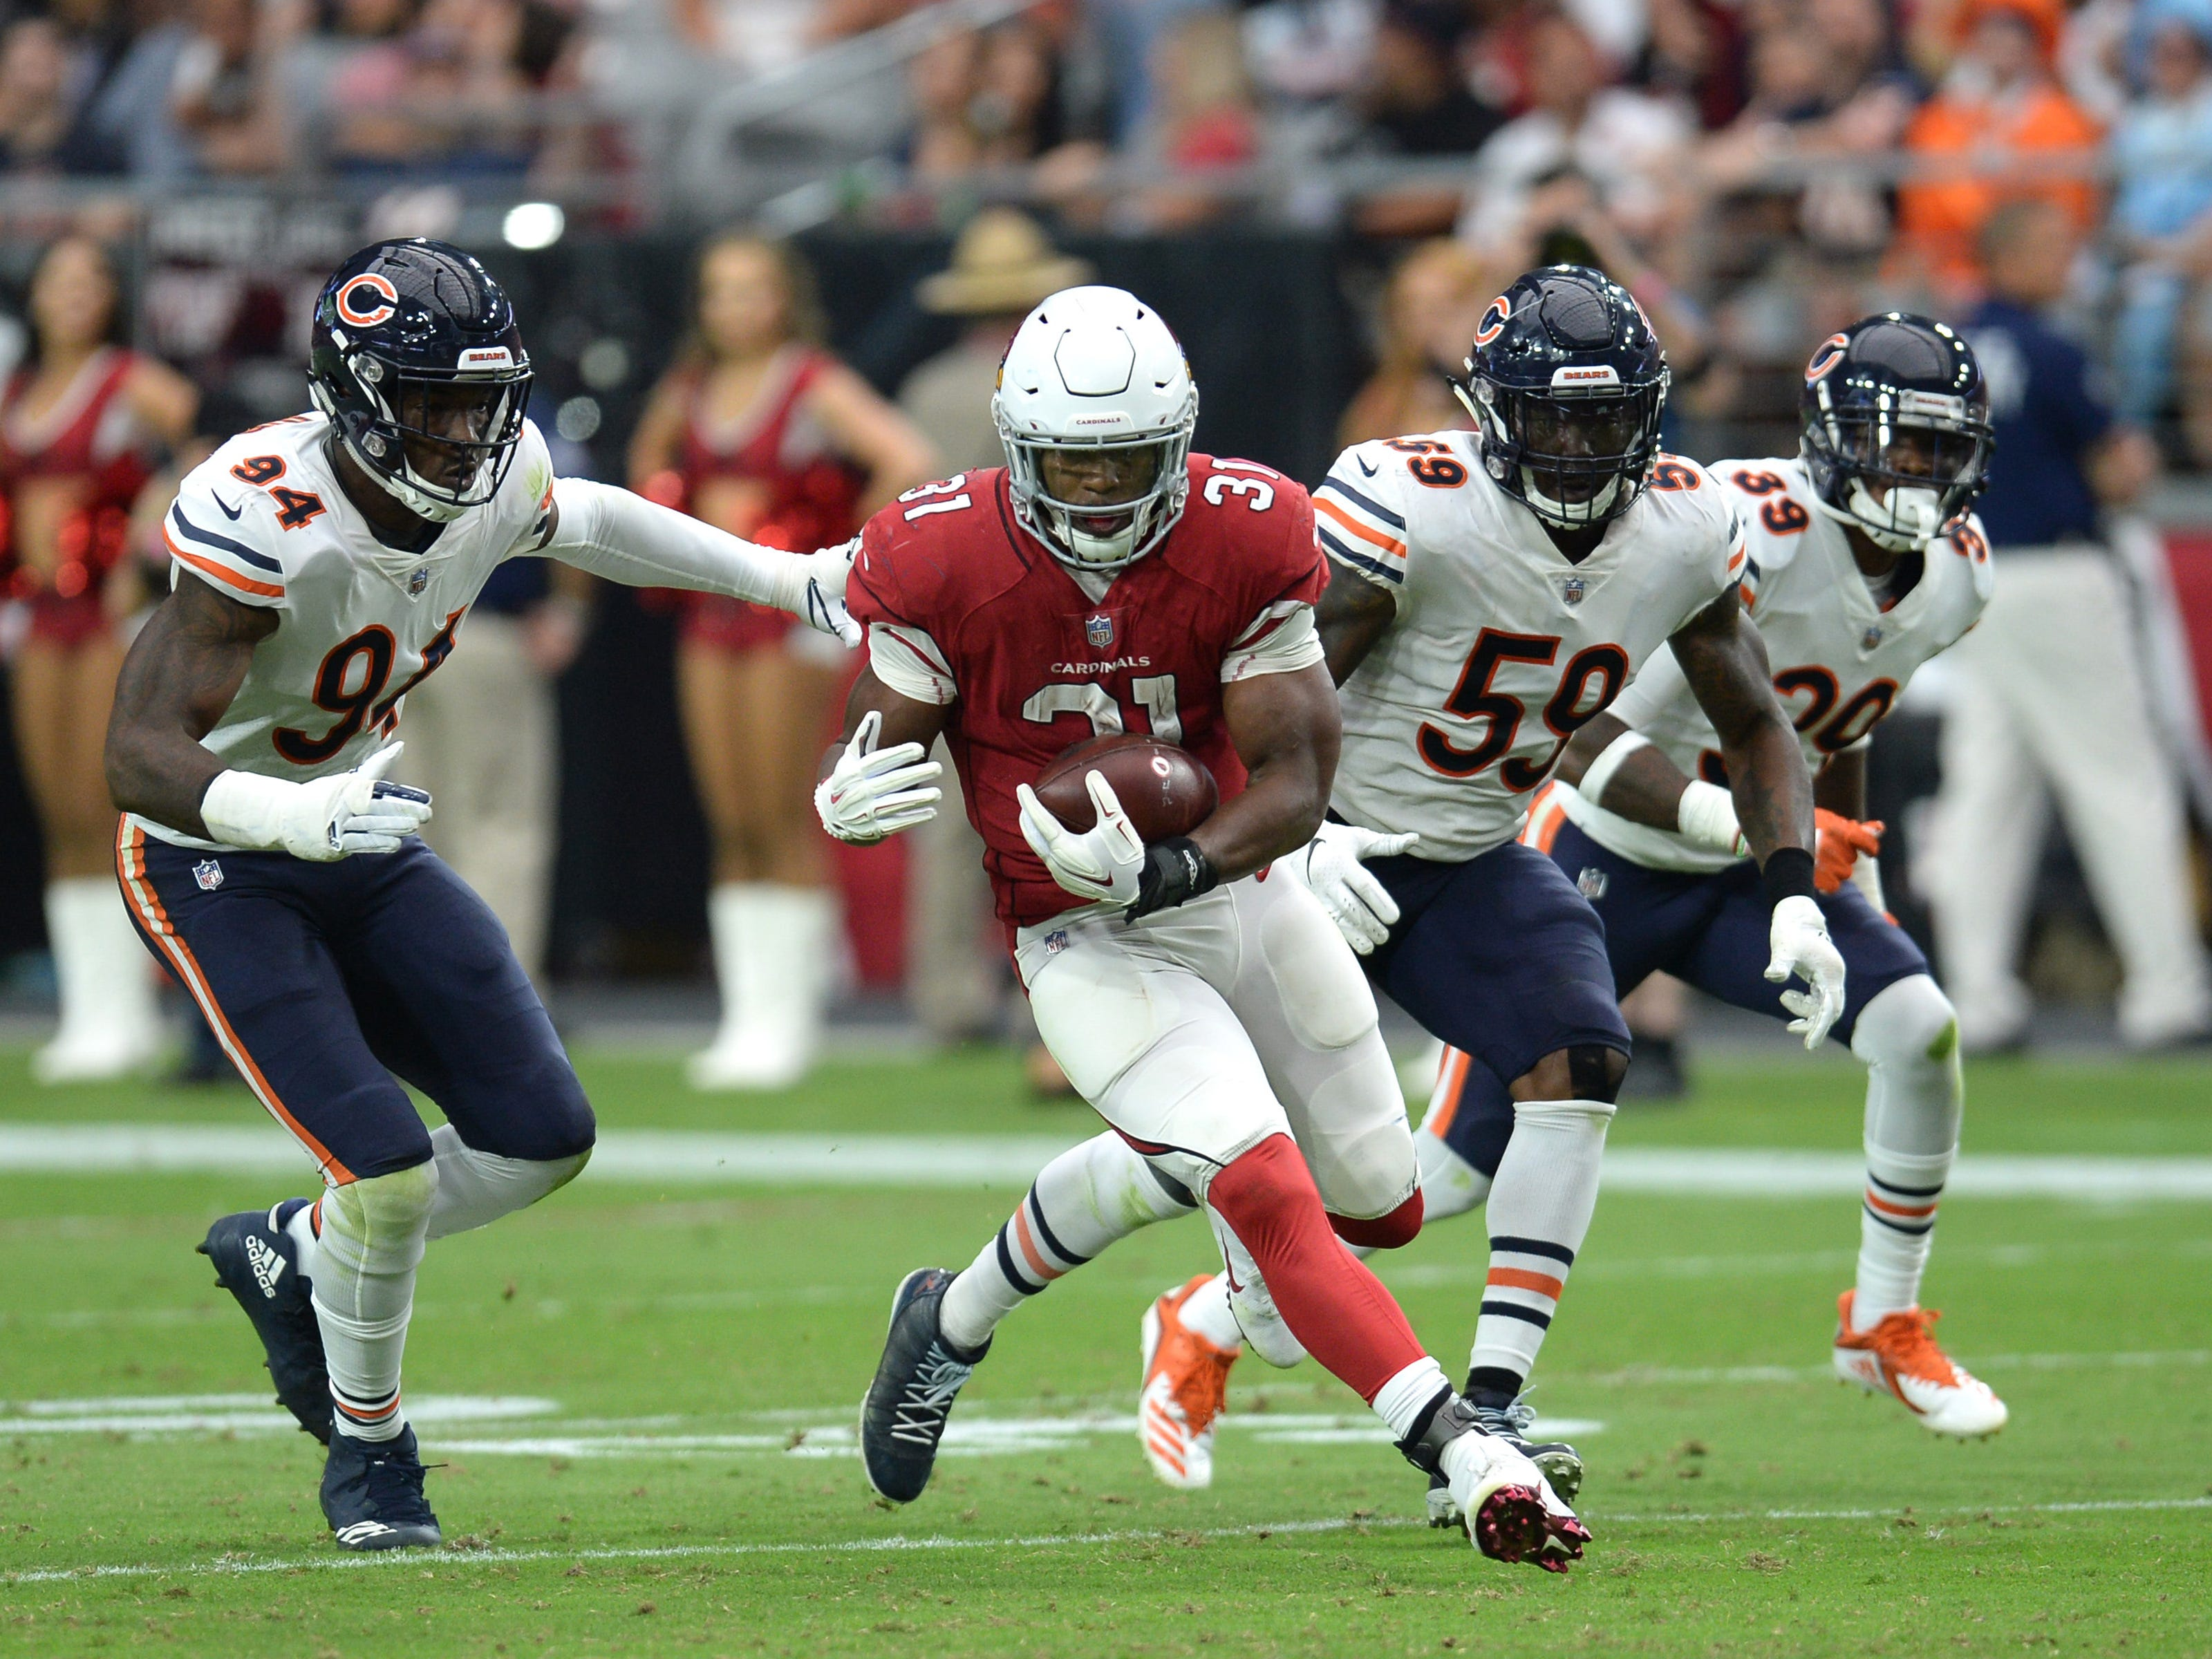 32. Cardinals (32): David Johnson once talked about getting 1,000 yards rushing and receiving in same year. He's on pace to top 300-300 plateau in '18.